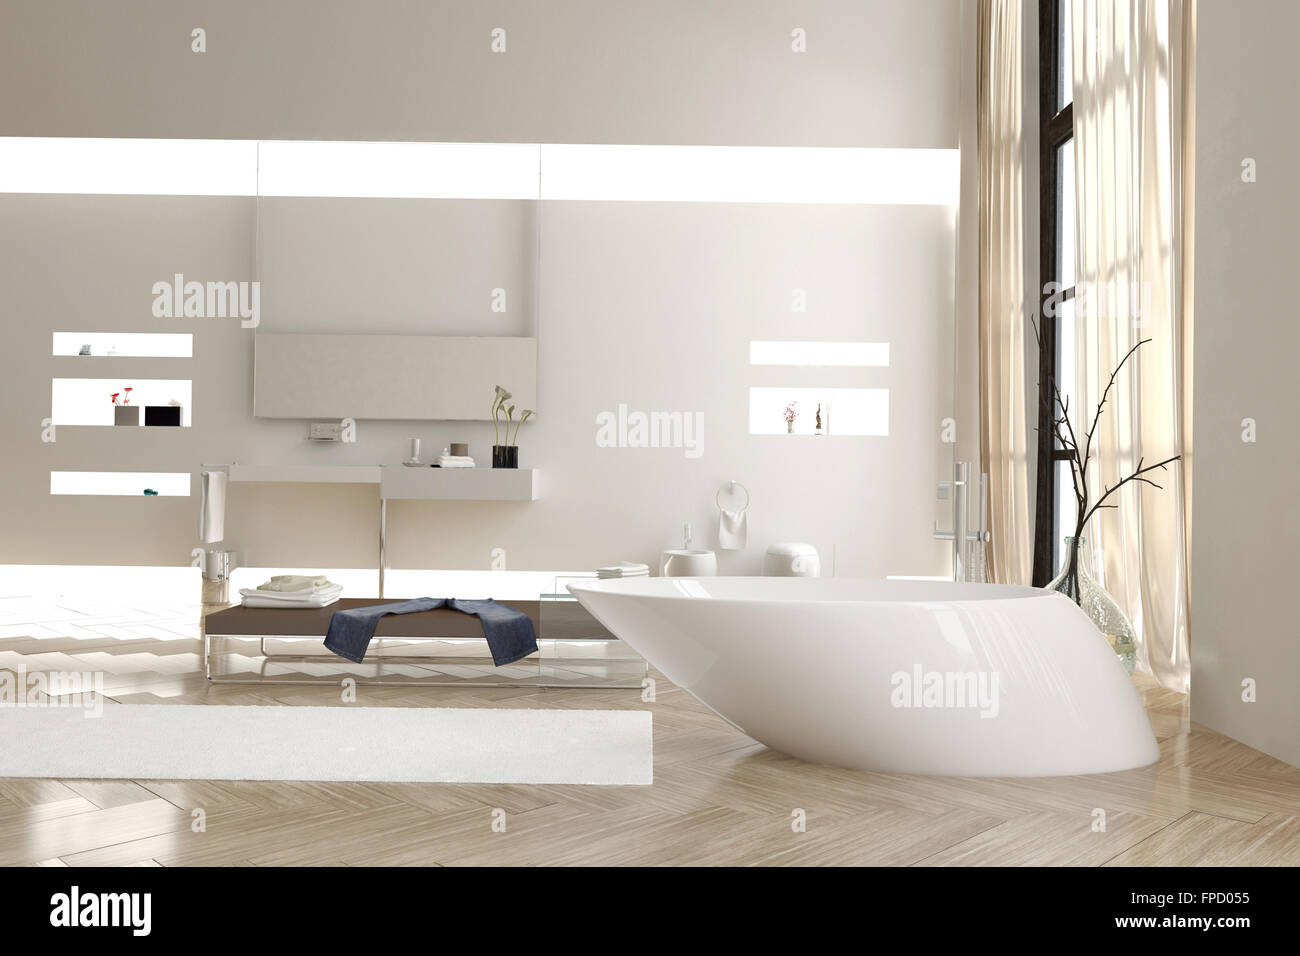 modern bathroom with a funky white bathtub and wall mounted vanity units and cabinets with a